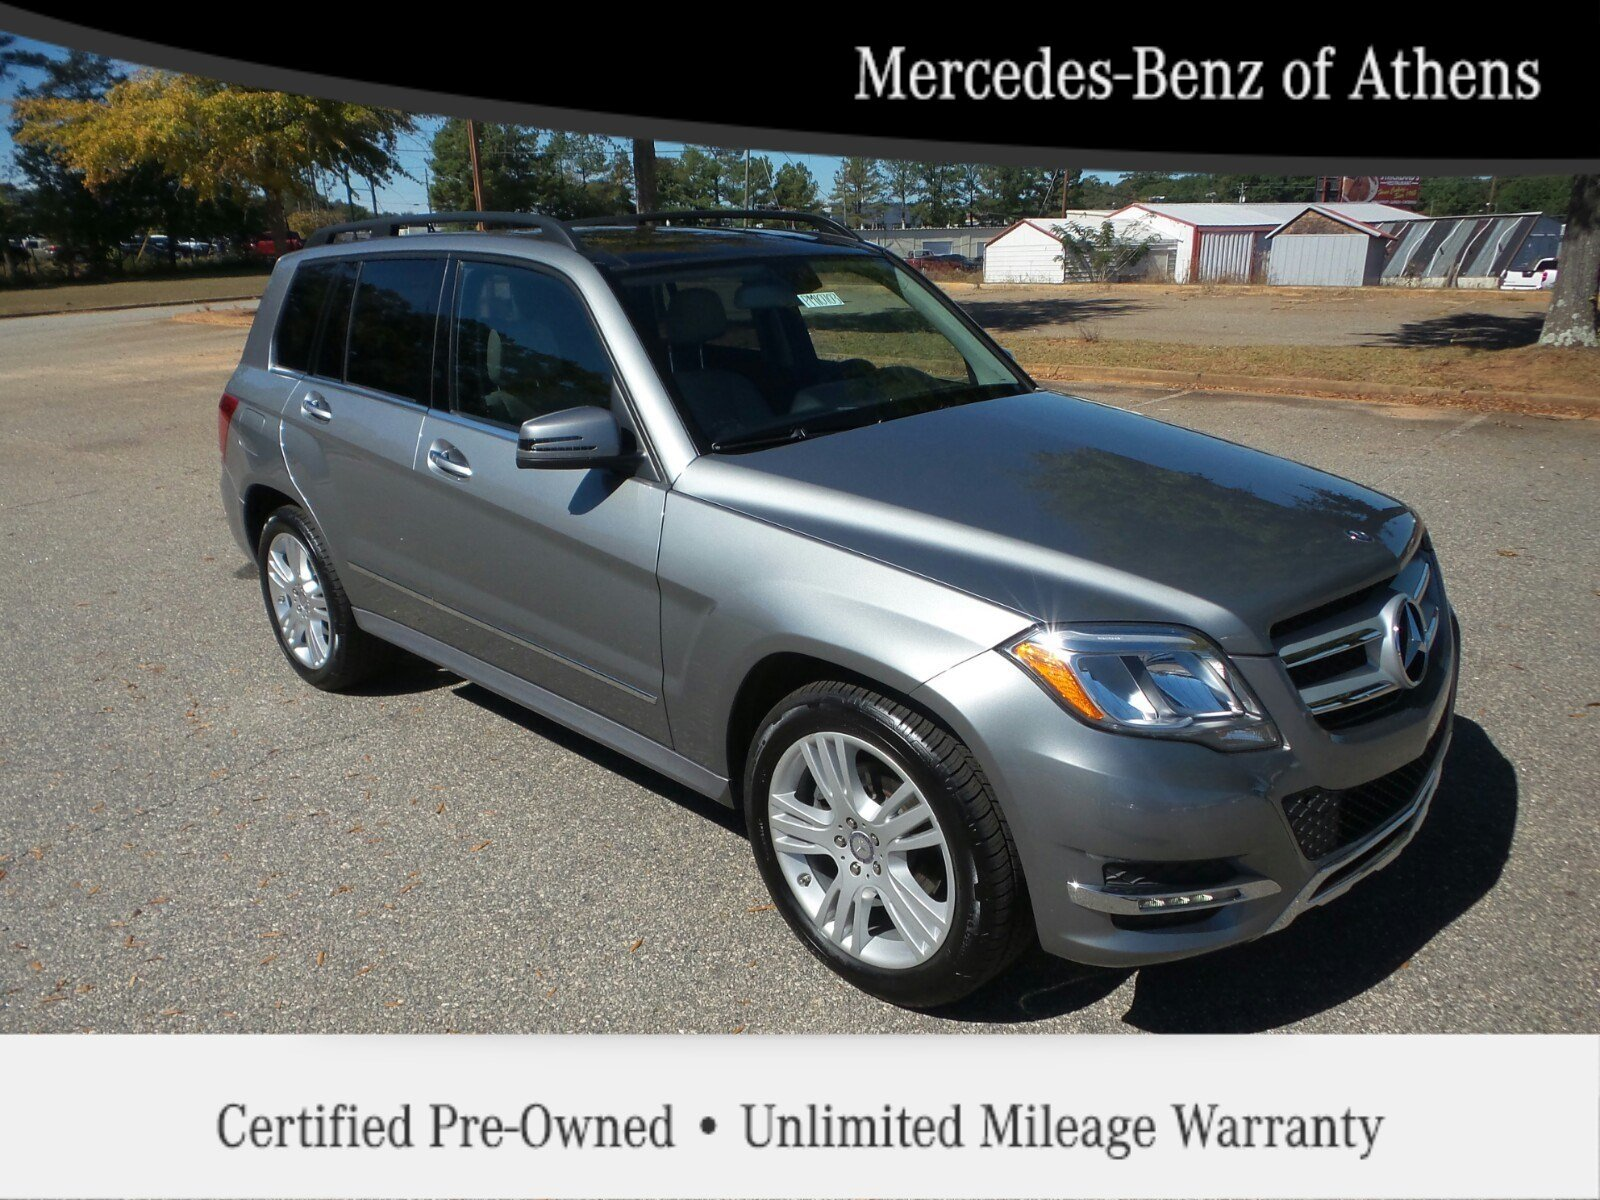 certified pre owned 2014 mercedes benz glk glk350 suv in athens pm10703 mercedes benz of athens. Black Bedroom Furniture Sets. Home Design Ideas